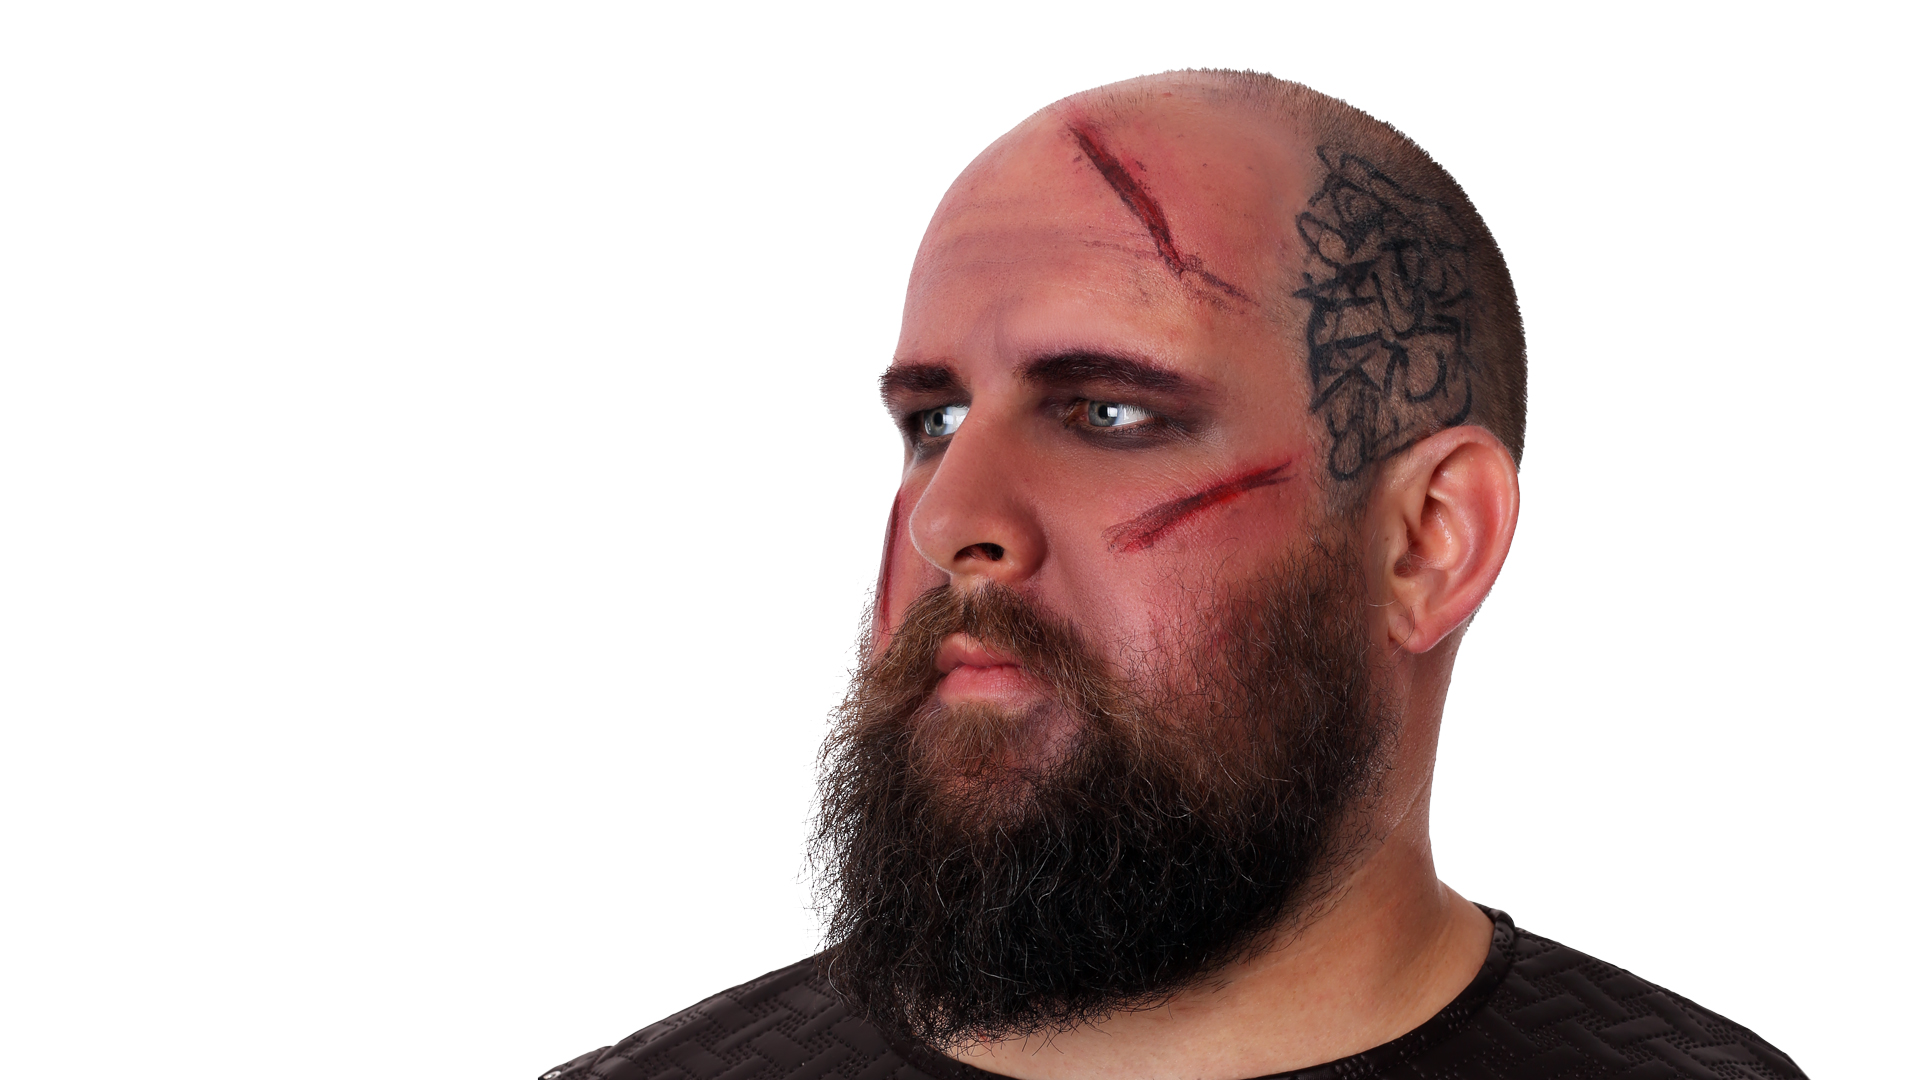 ragnar lothbrok tattoo makeup